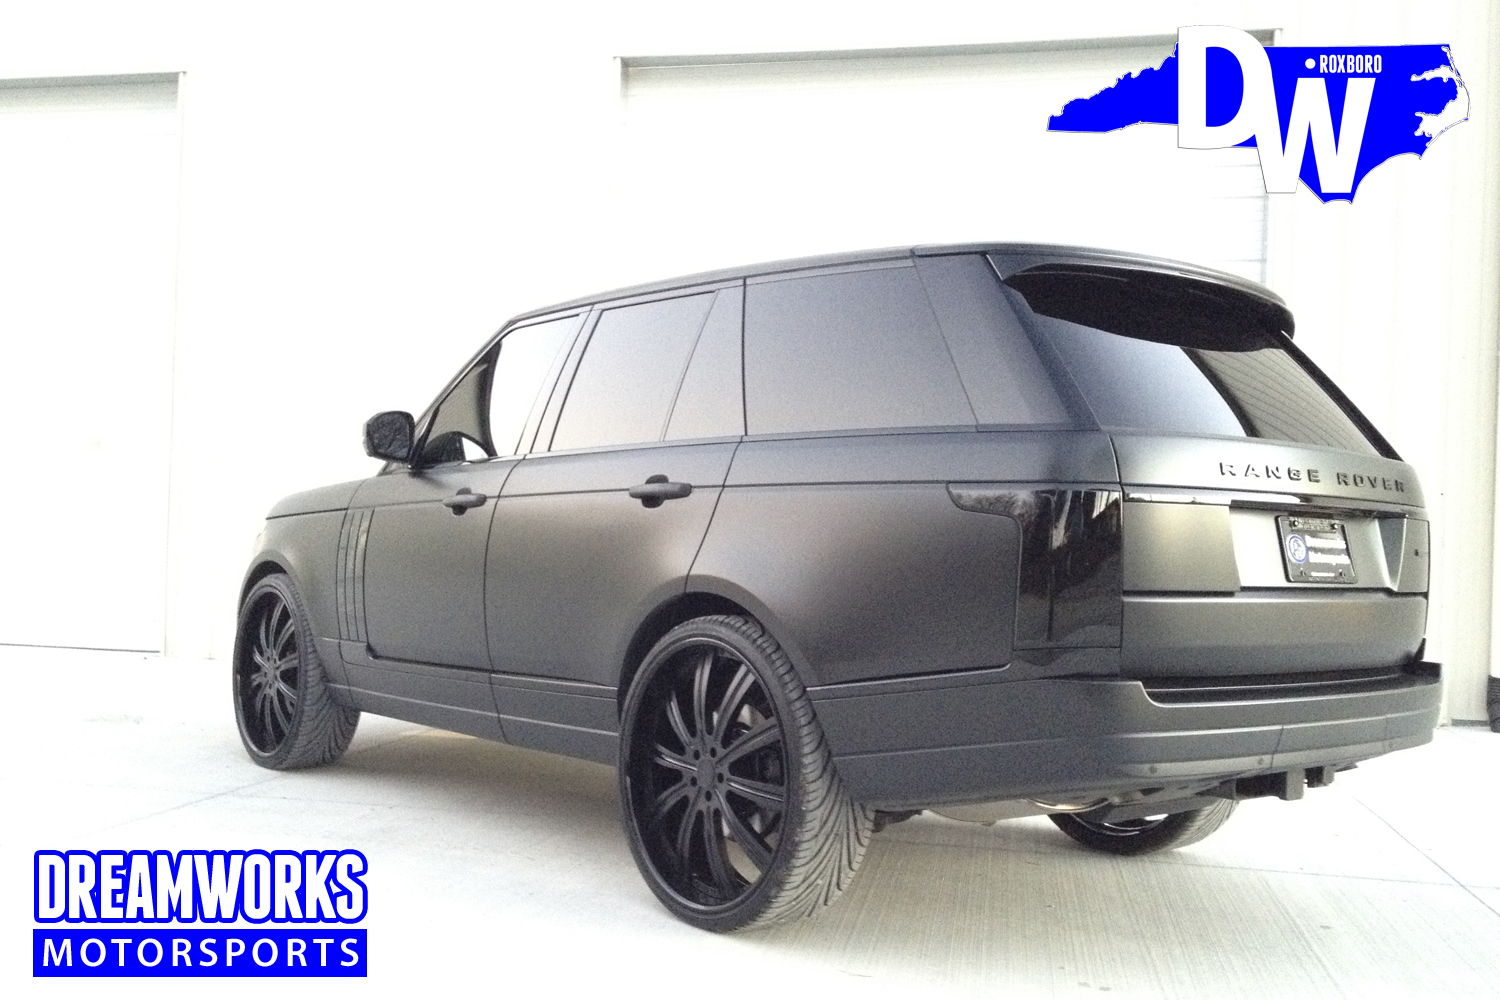 Wesley-Mathews-Range-Rover-Matte-Wrapped-By-Dreamworks-Motorsports-14.jpg